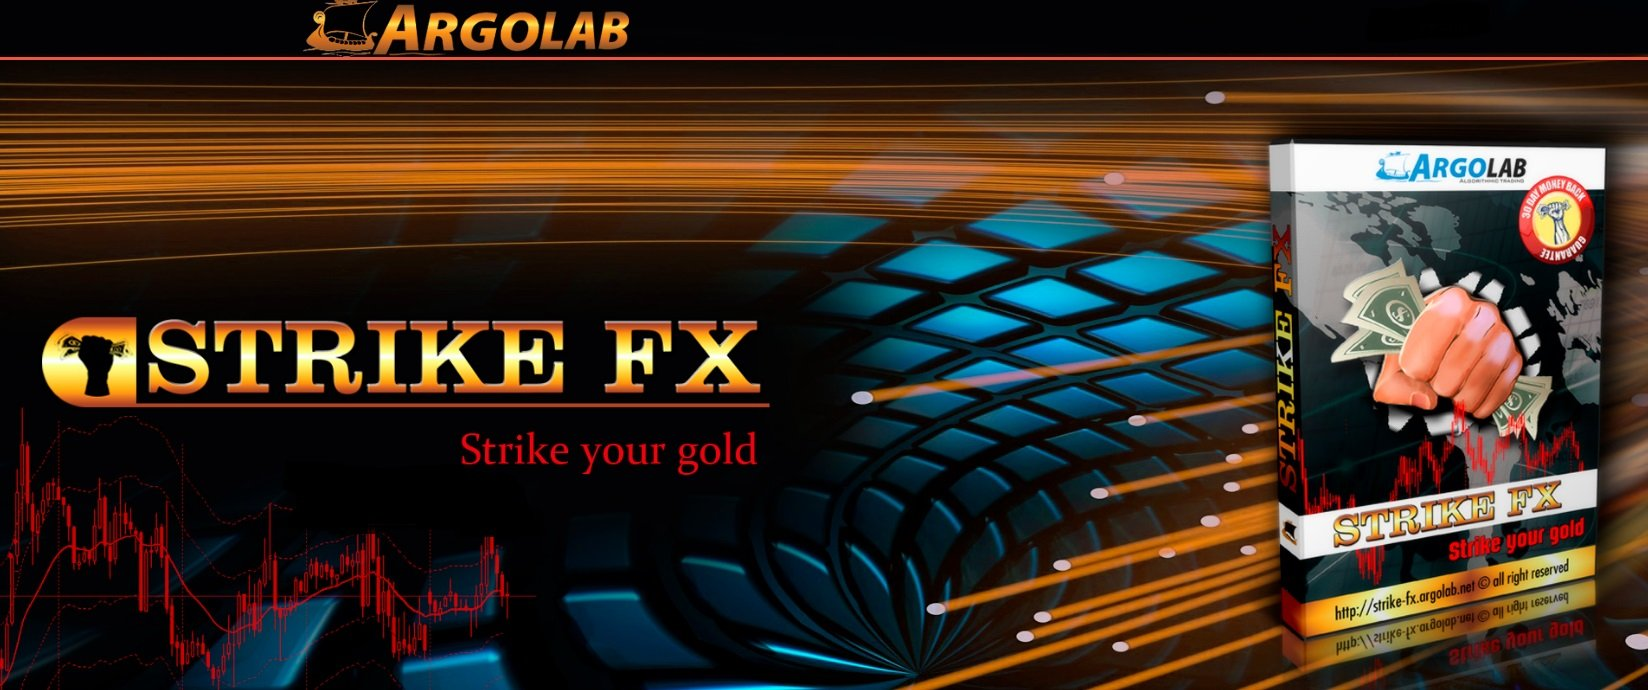 Strike Fx EA Review - Powerful Forex Expert Advisor Of New Generation And Profitable Multicurrency Martingale FX Trading Robot Created By Argolab